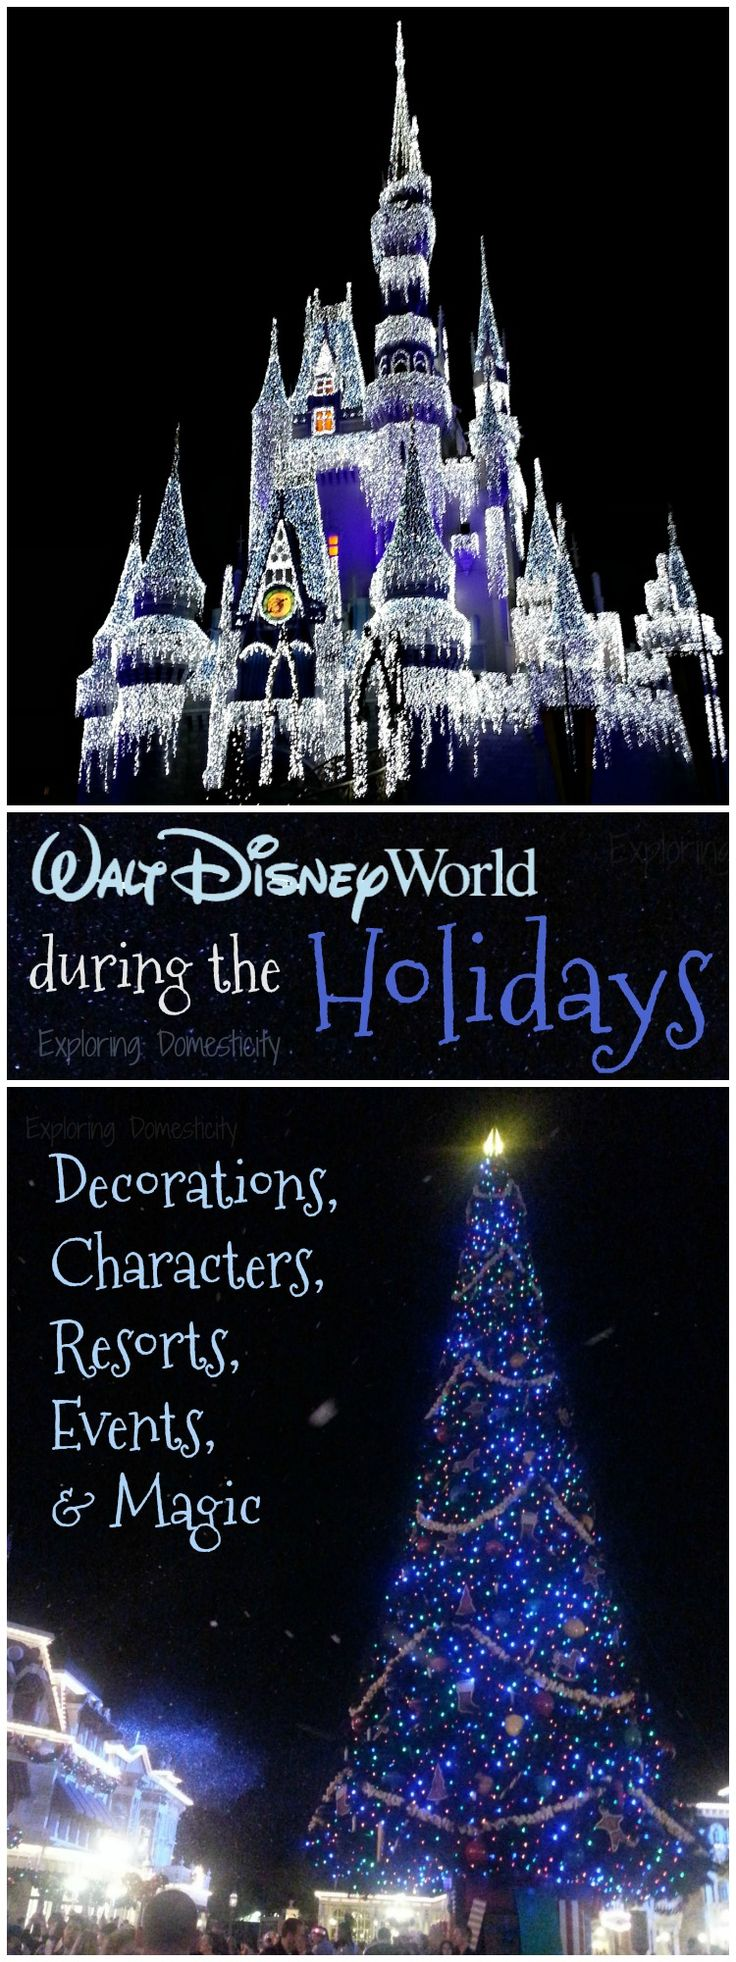 There are so many magical things to experience during a Walt Disney World Christmas! Decorations, special events and characters, etc. This is why your family should experience the magic of Walt Disney World during the holidays! (adsbygoogle = window.adsbygoogle || []).push({});  ...